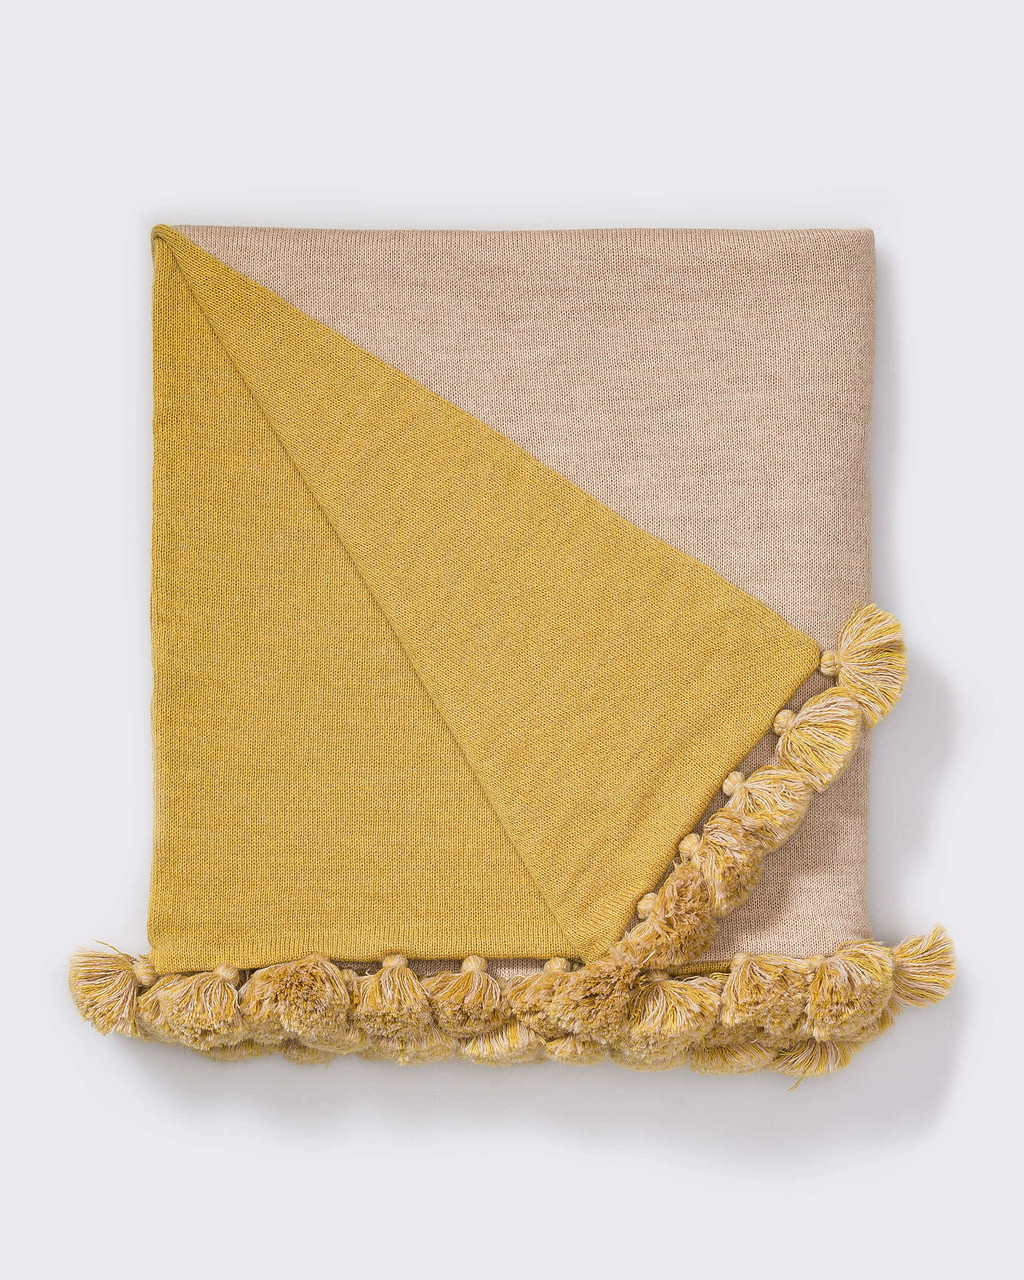 Alicia Adams Alpaca Reversible Pompom Blanket, pompom alpaca king bed blanket, alpaca throw blanket, 100 alpaca blanket, beige and french yellow alpaca blanket